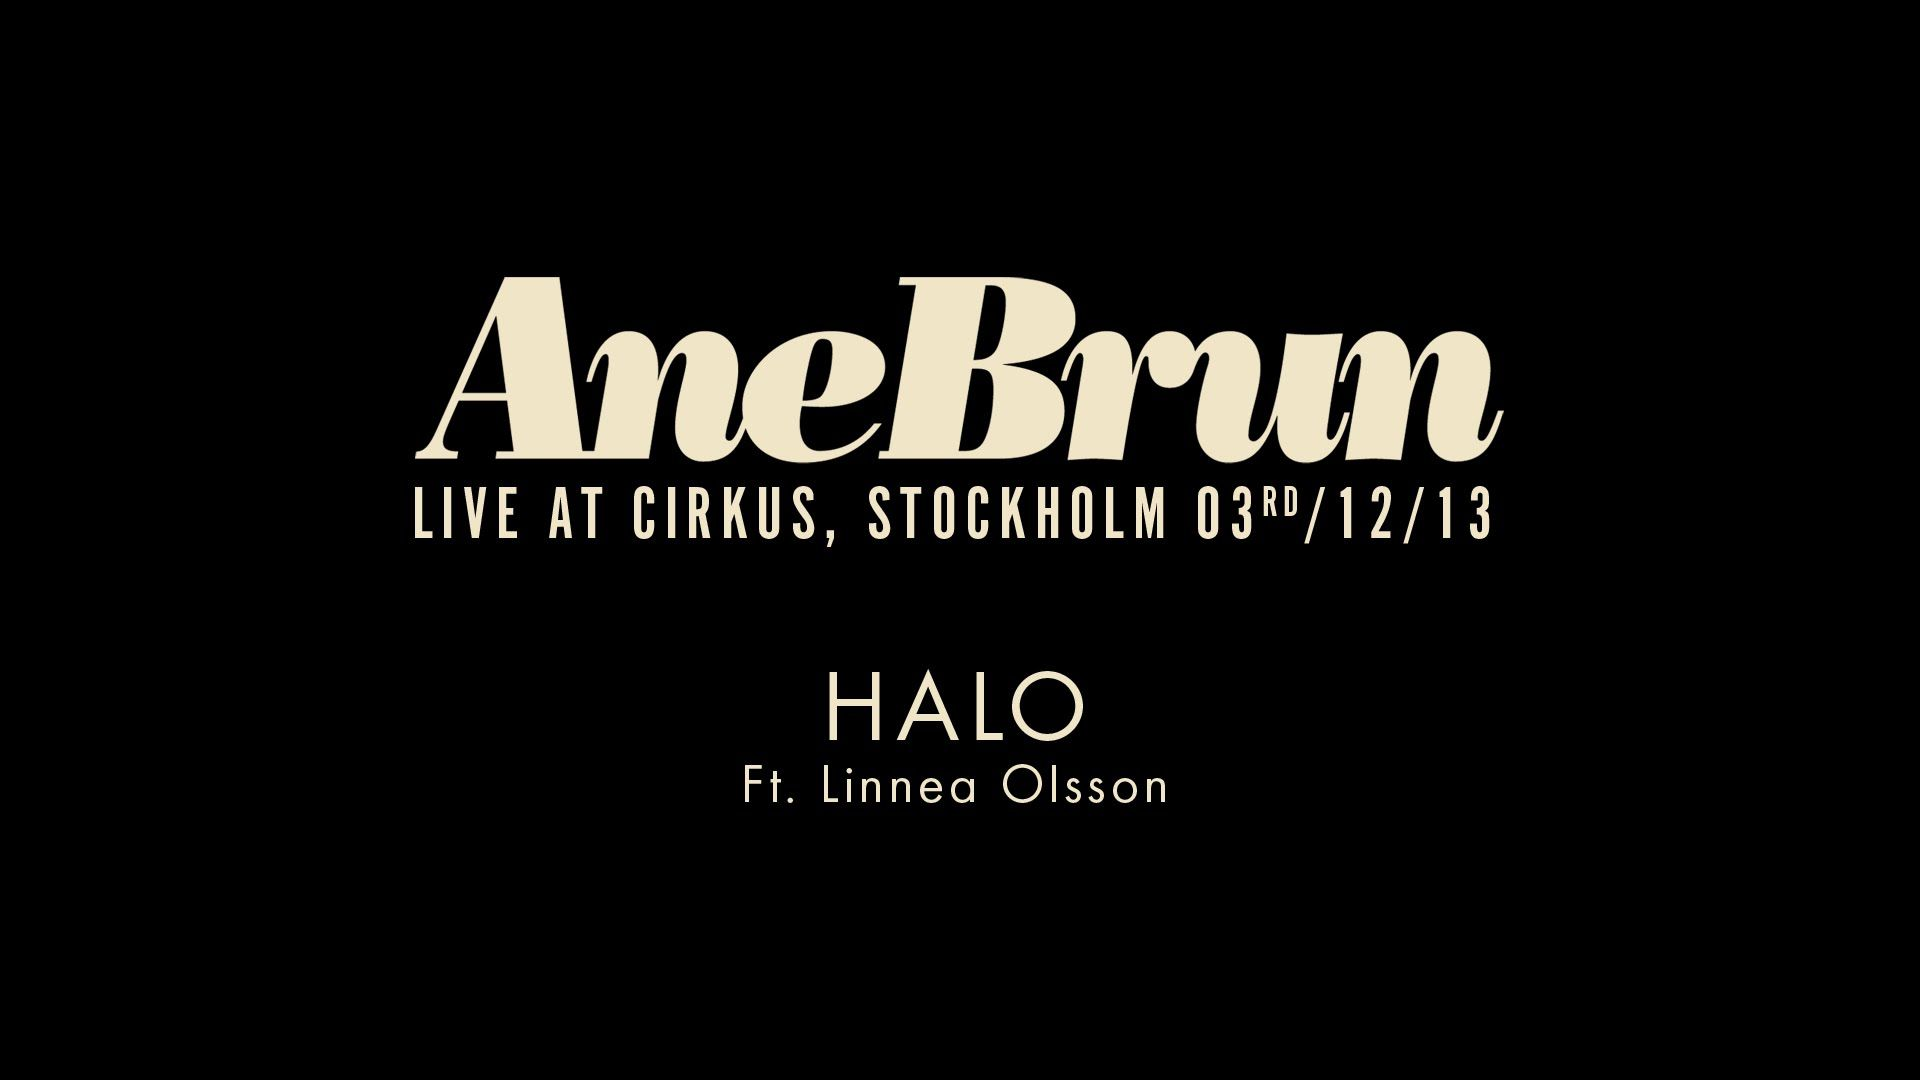 Ane Brun Halo Feat Linnea Olsson Live How To Express